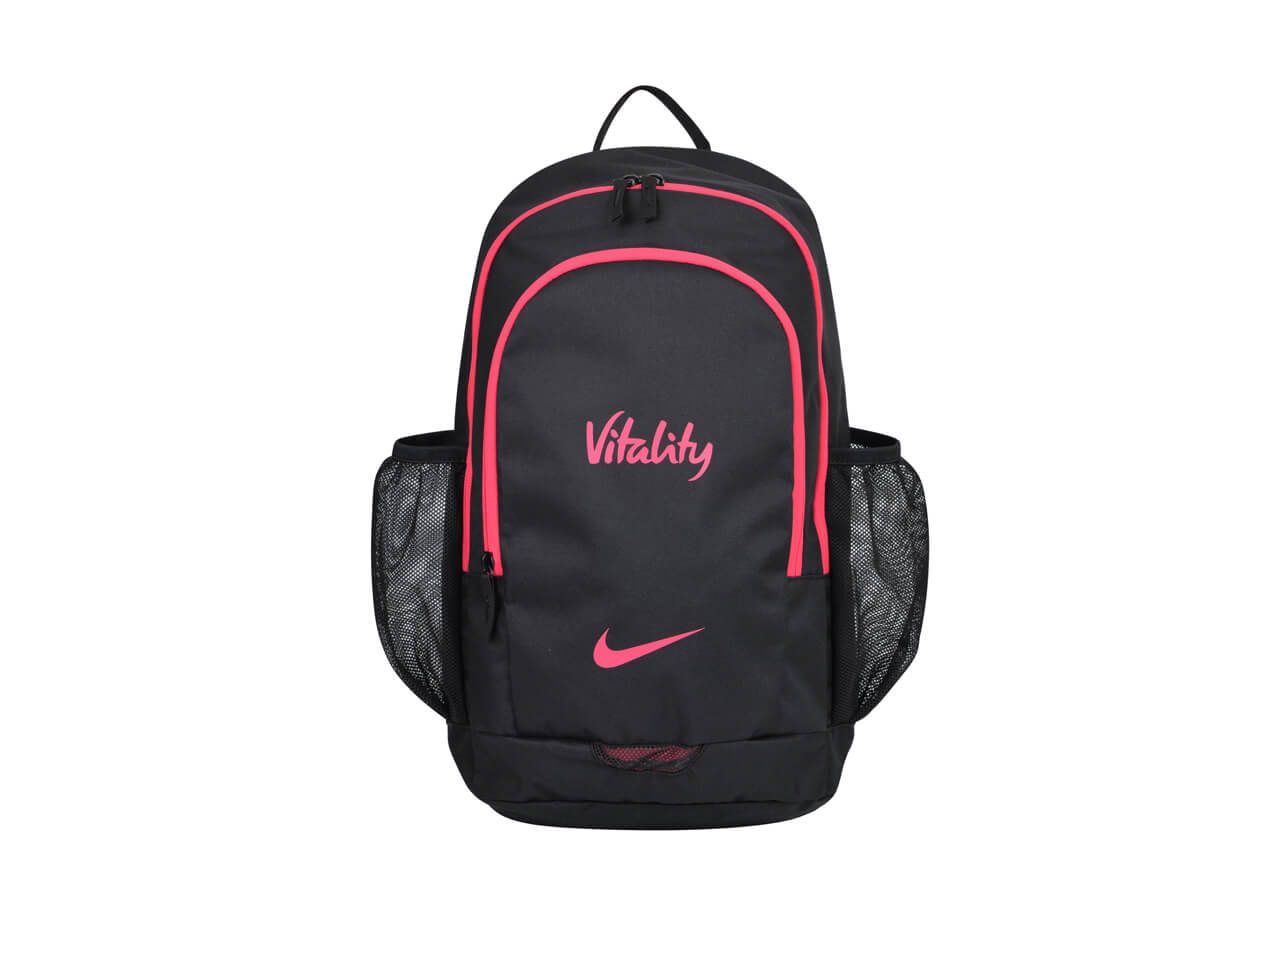 Vitality collection backpack by Nike